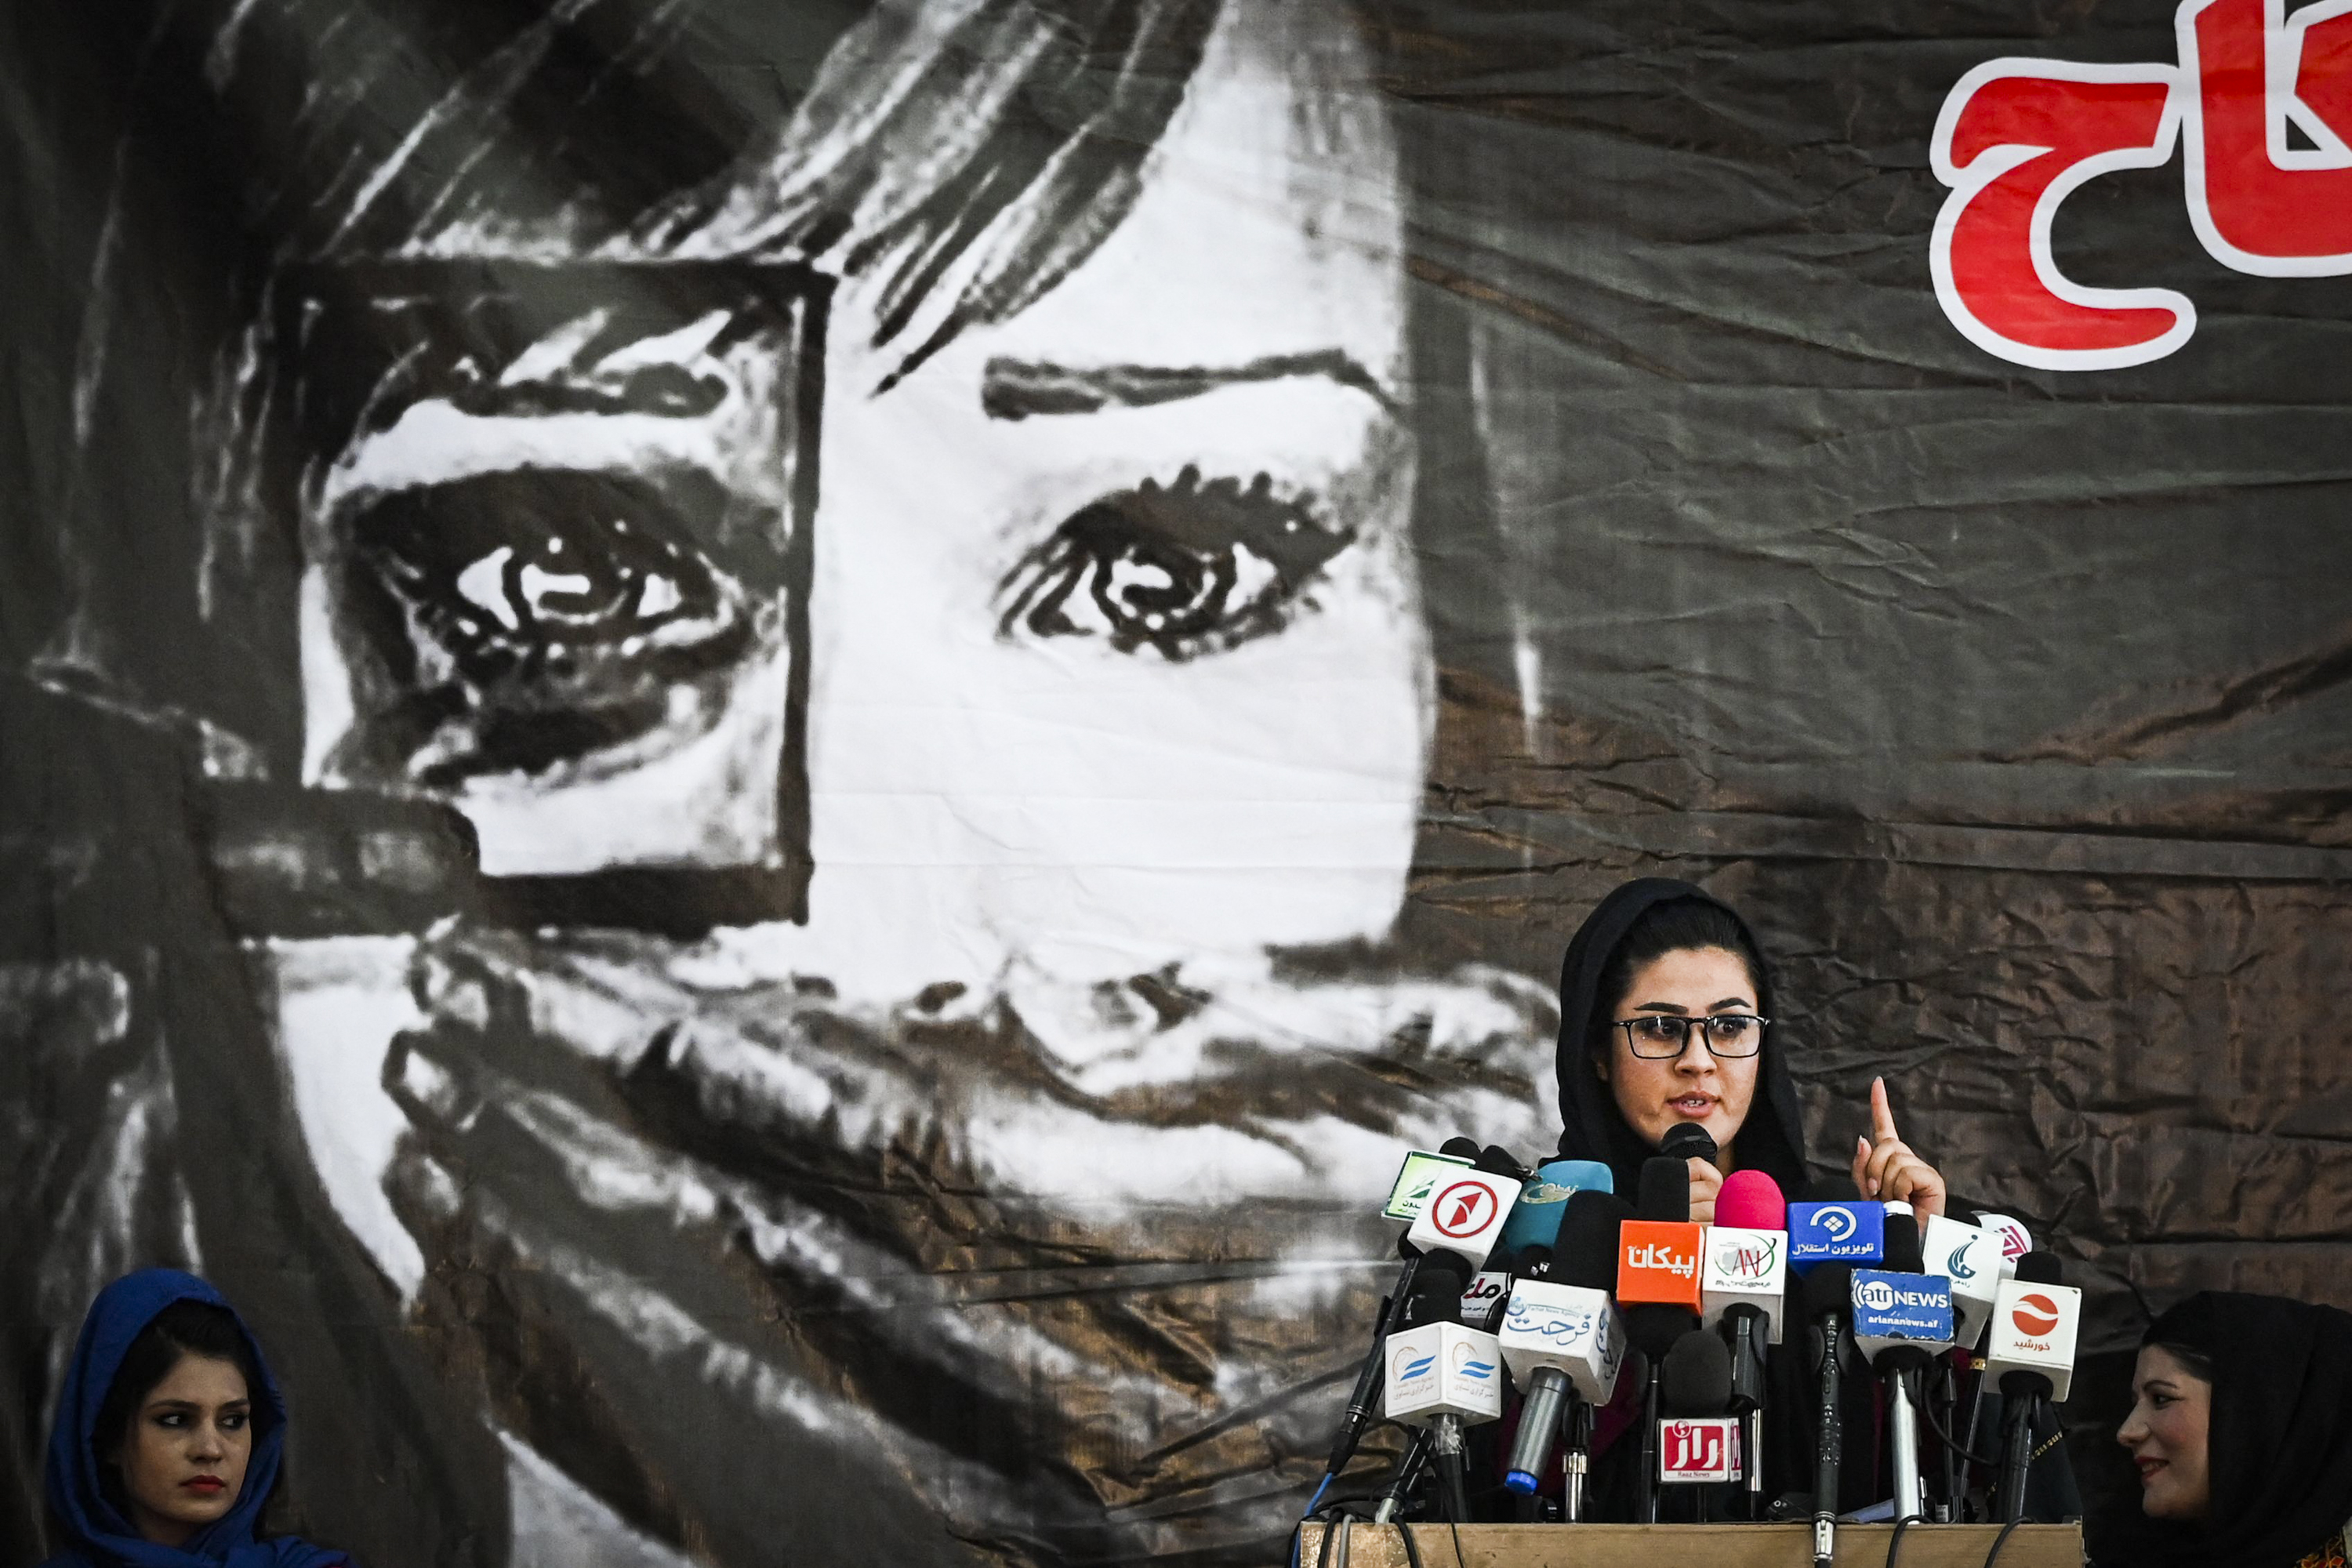 An Afghan woman onstage in Kabul speaks into a cluster of microphones in front of a large illustration of a woman with a hand covering her mouth.